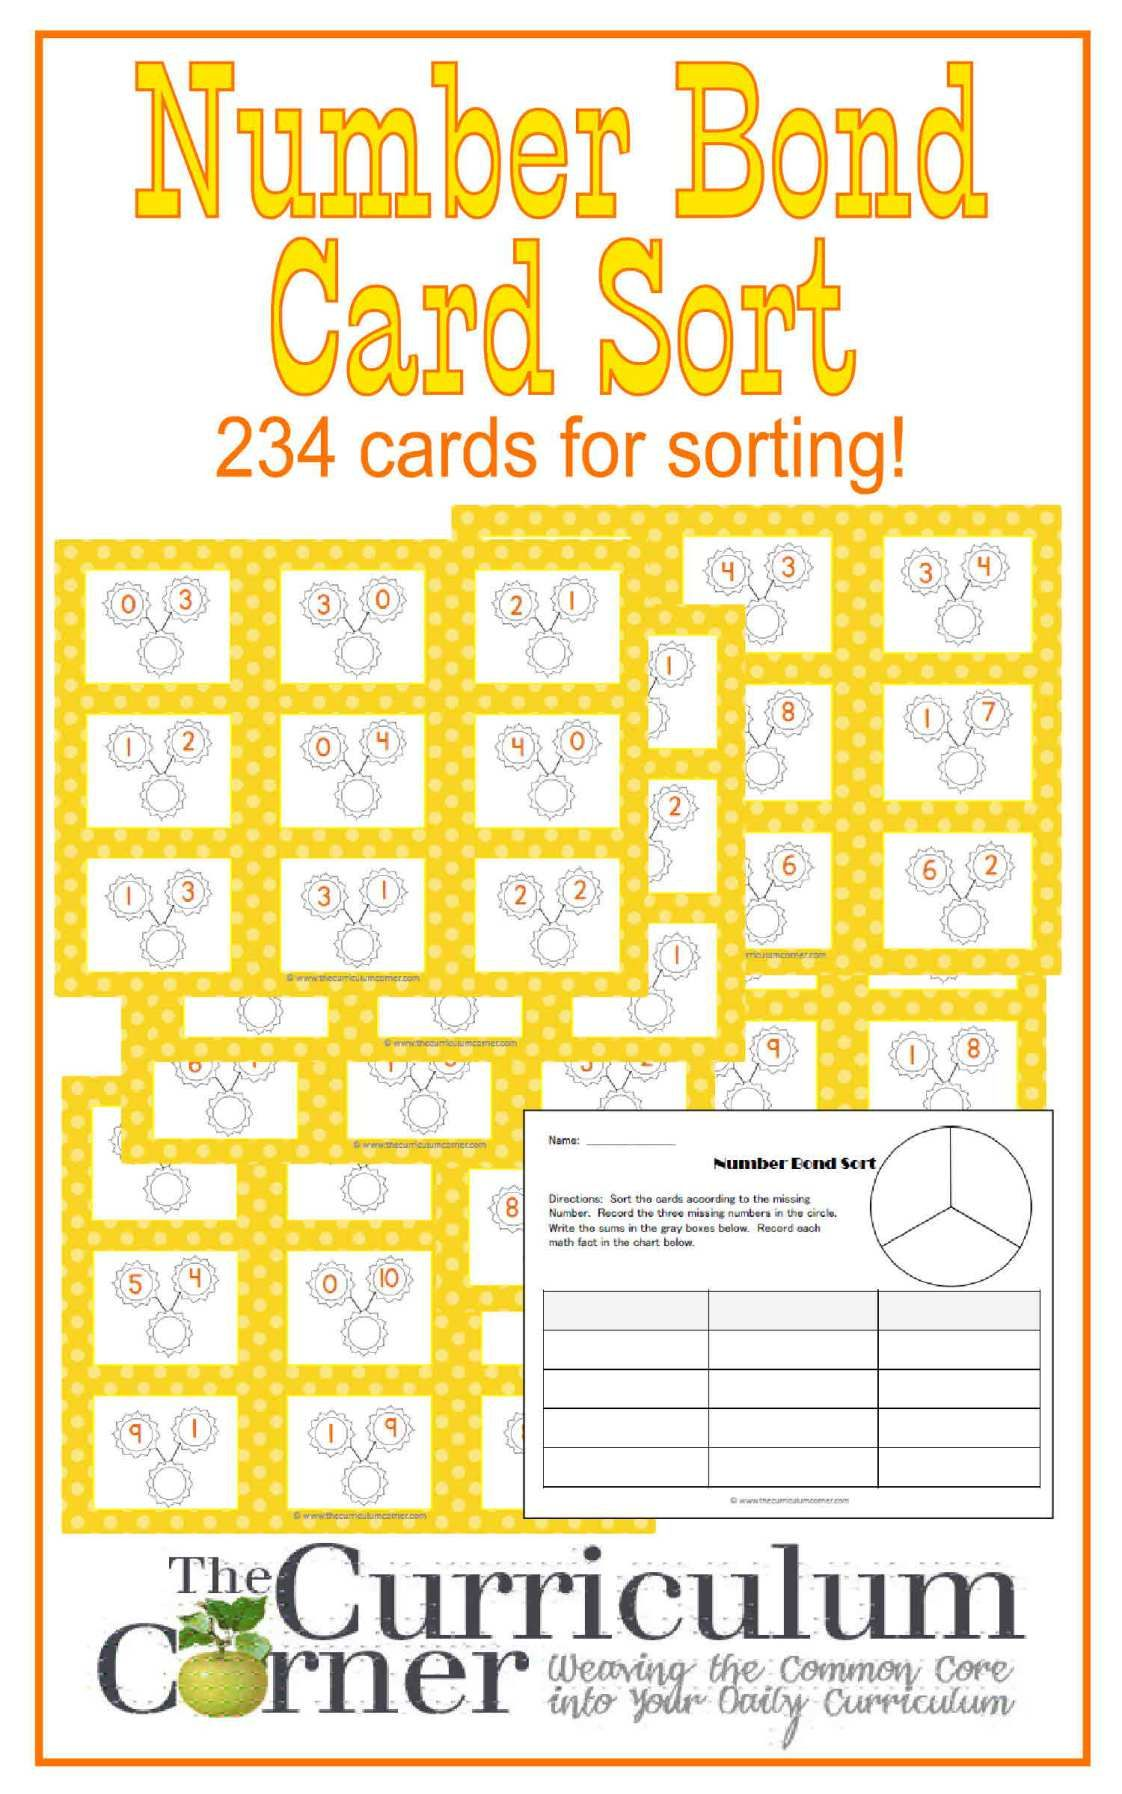 Number Bonds Card Sort Activity